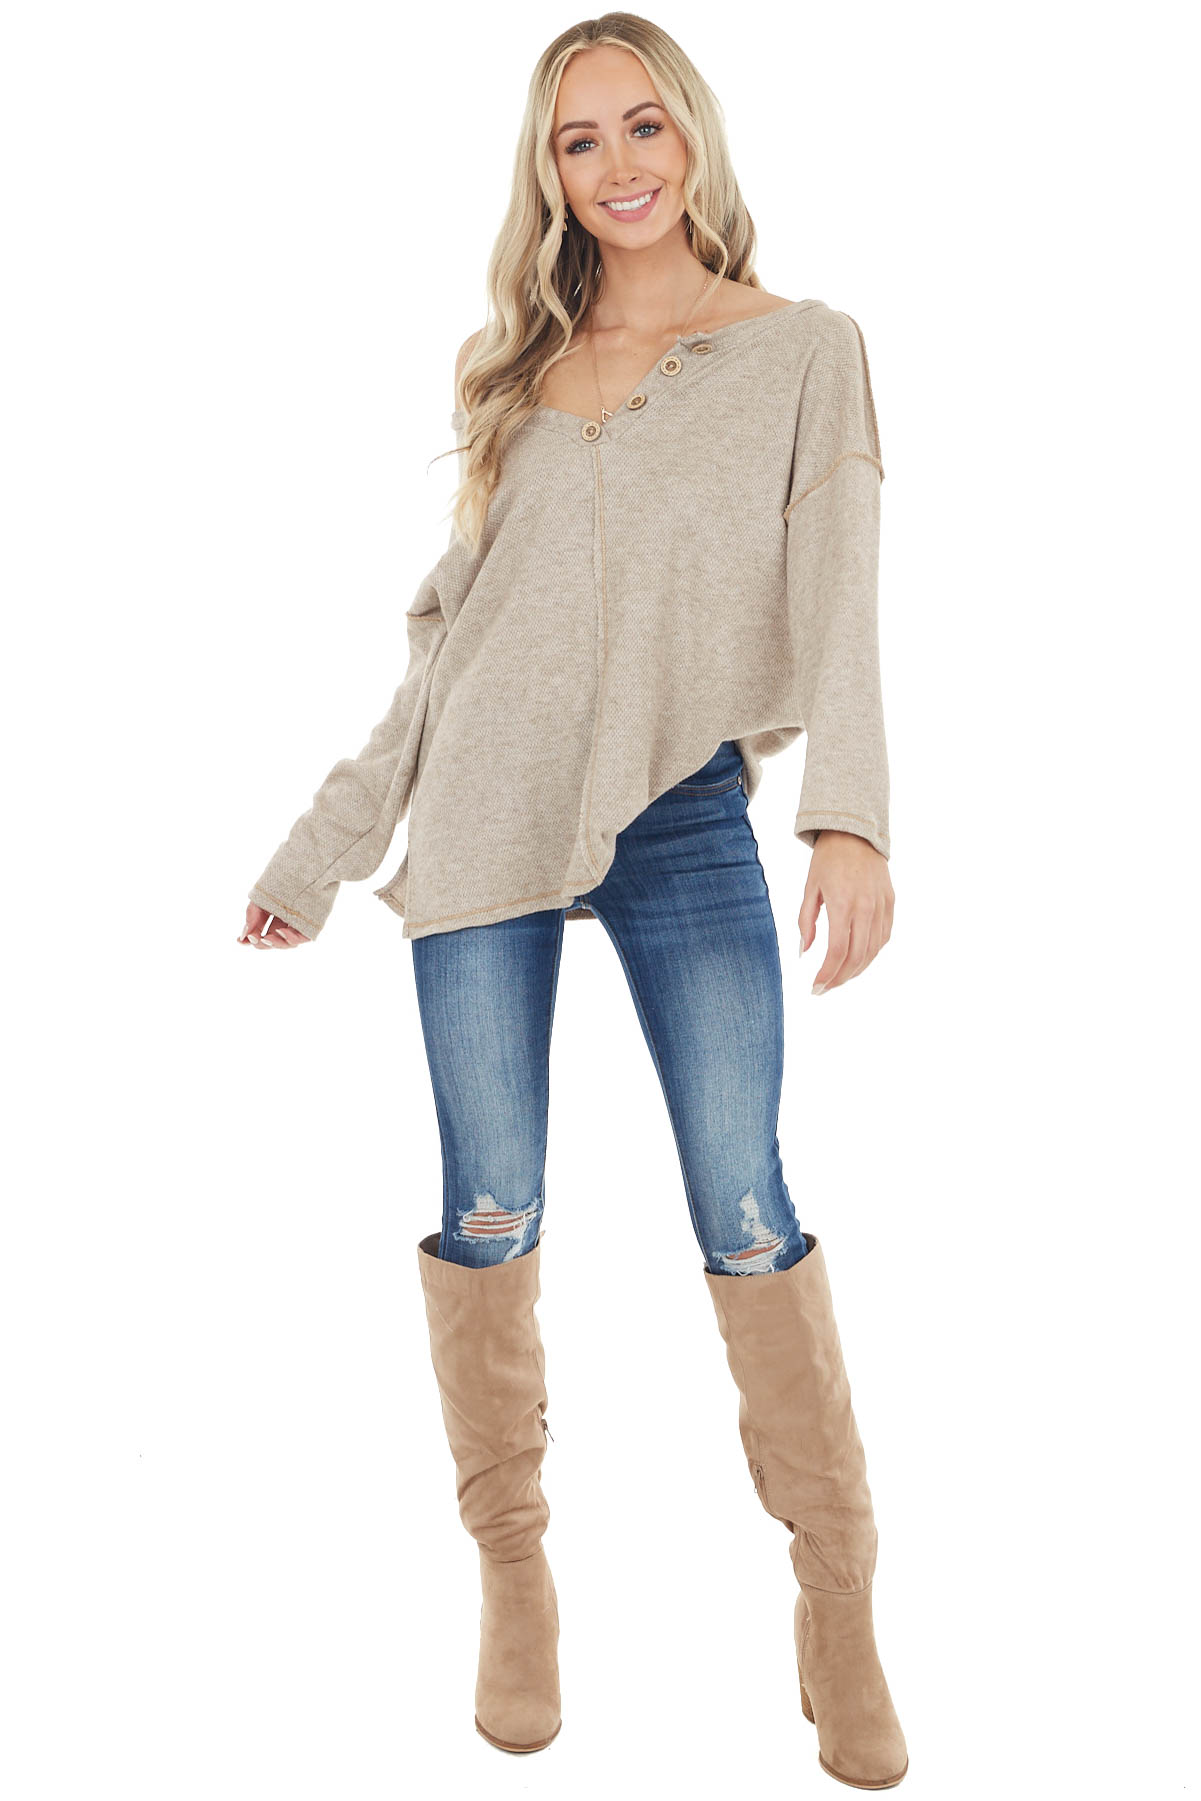 Heathered Oatmeal Henley Top with Reversed Seam Details